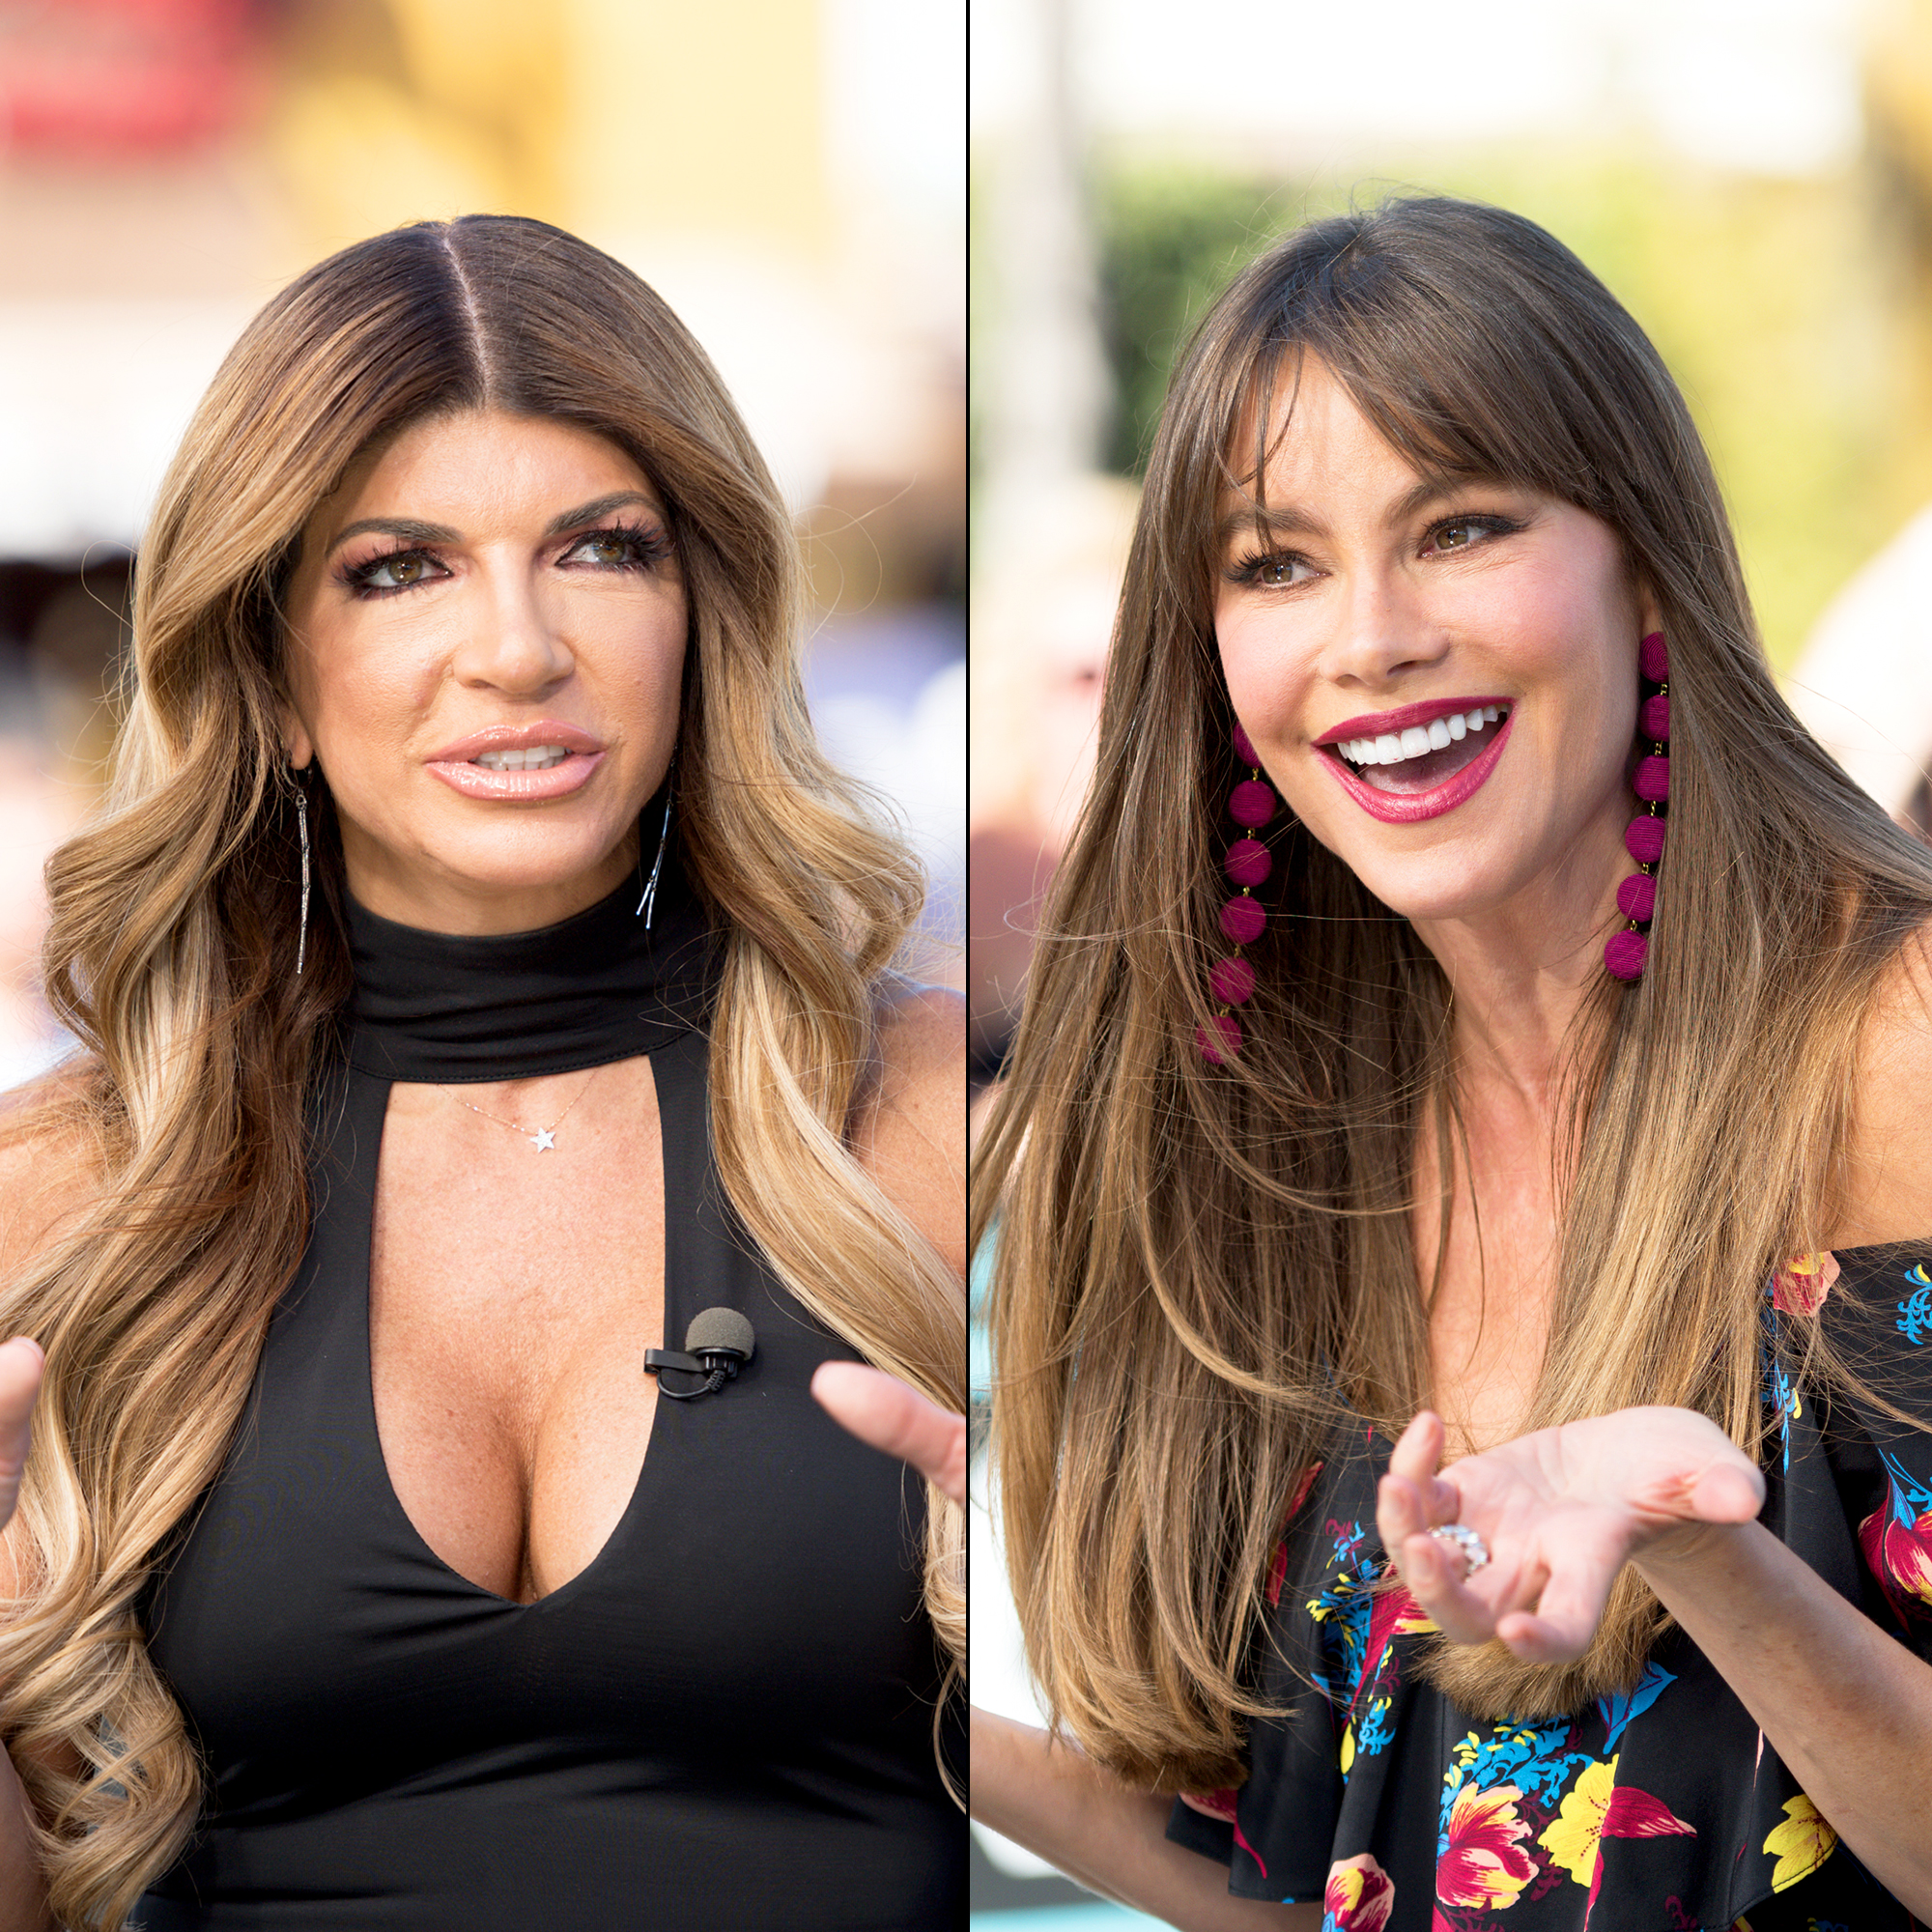 Teresa Giudice Says Sofia Vergara Should Be Nice Because She's an Immigrant